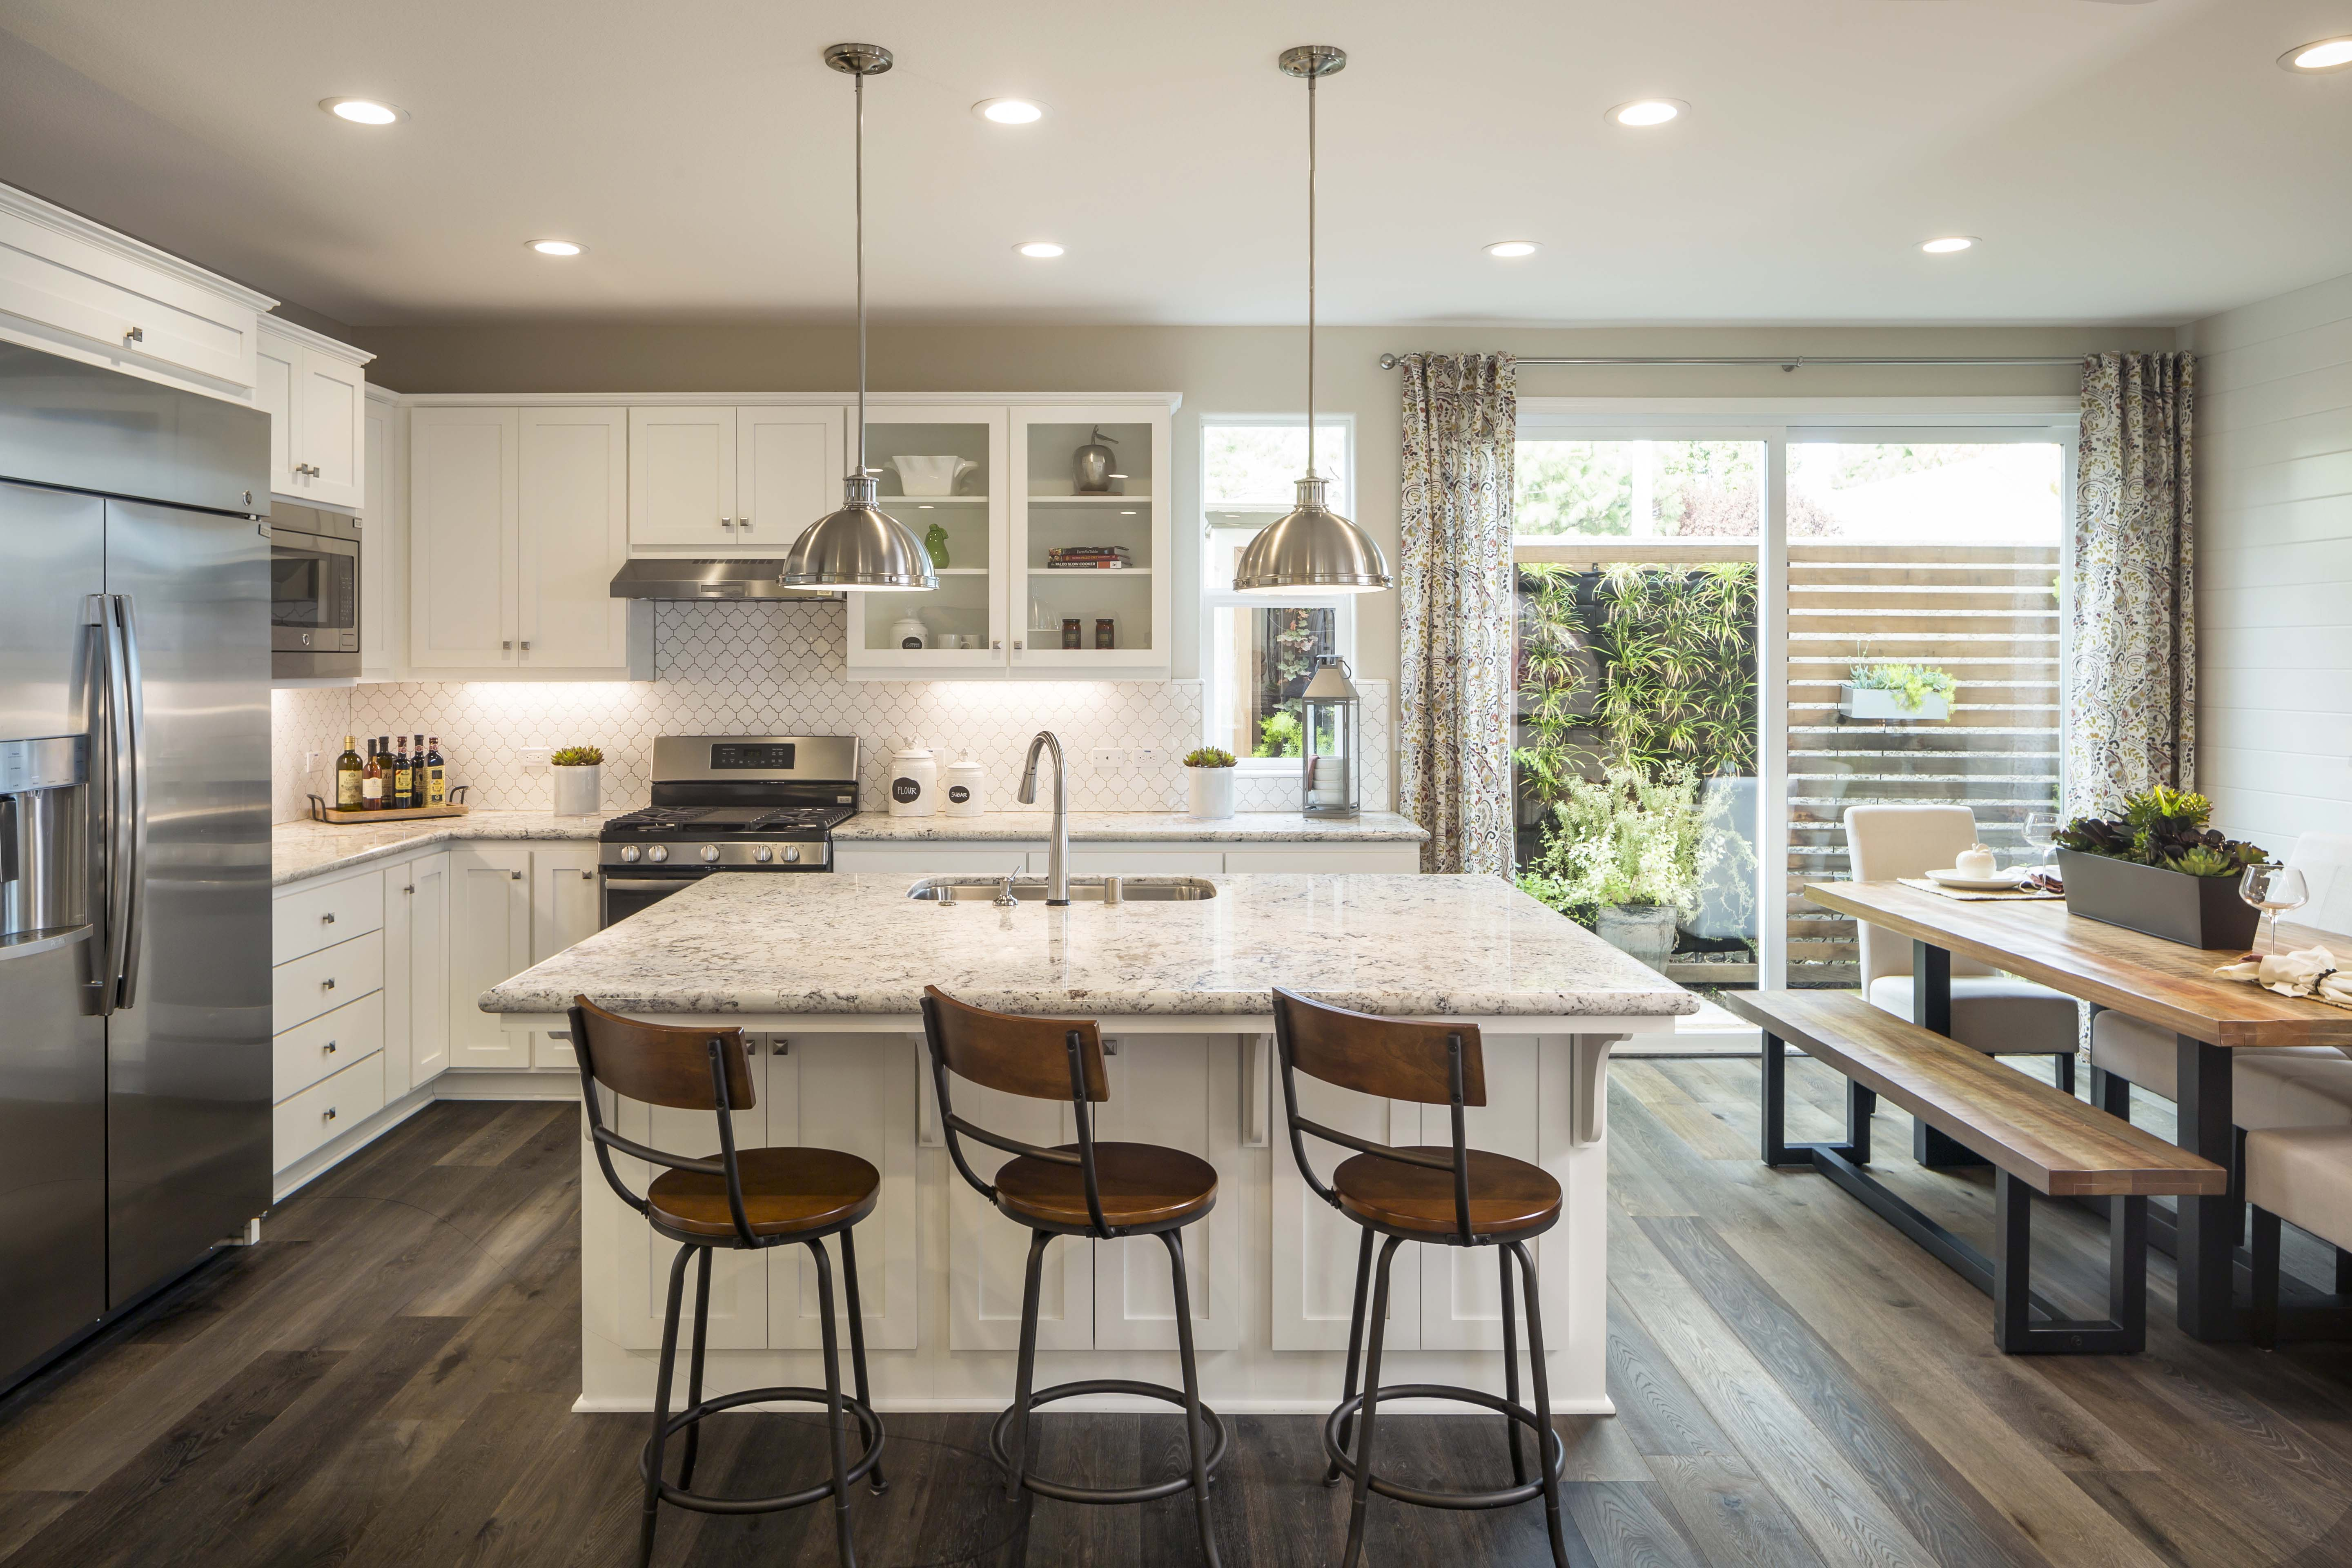 Live In The Here And Now At The Vines In Livermore. This Vibrant Community  Features Distinct Two Story Floor Plans With Up To 2,235 Sq. Ft., Four  Bedrooms, ...